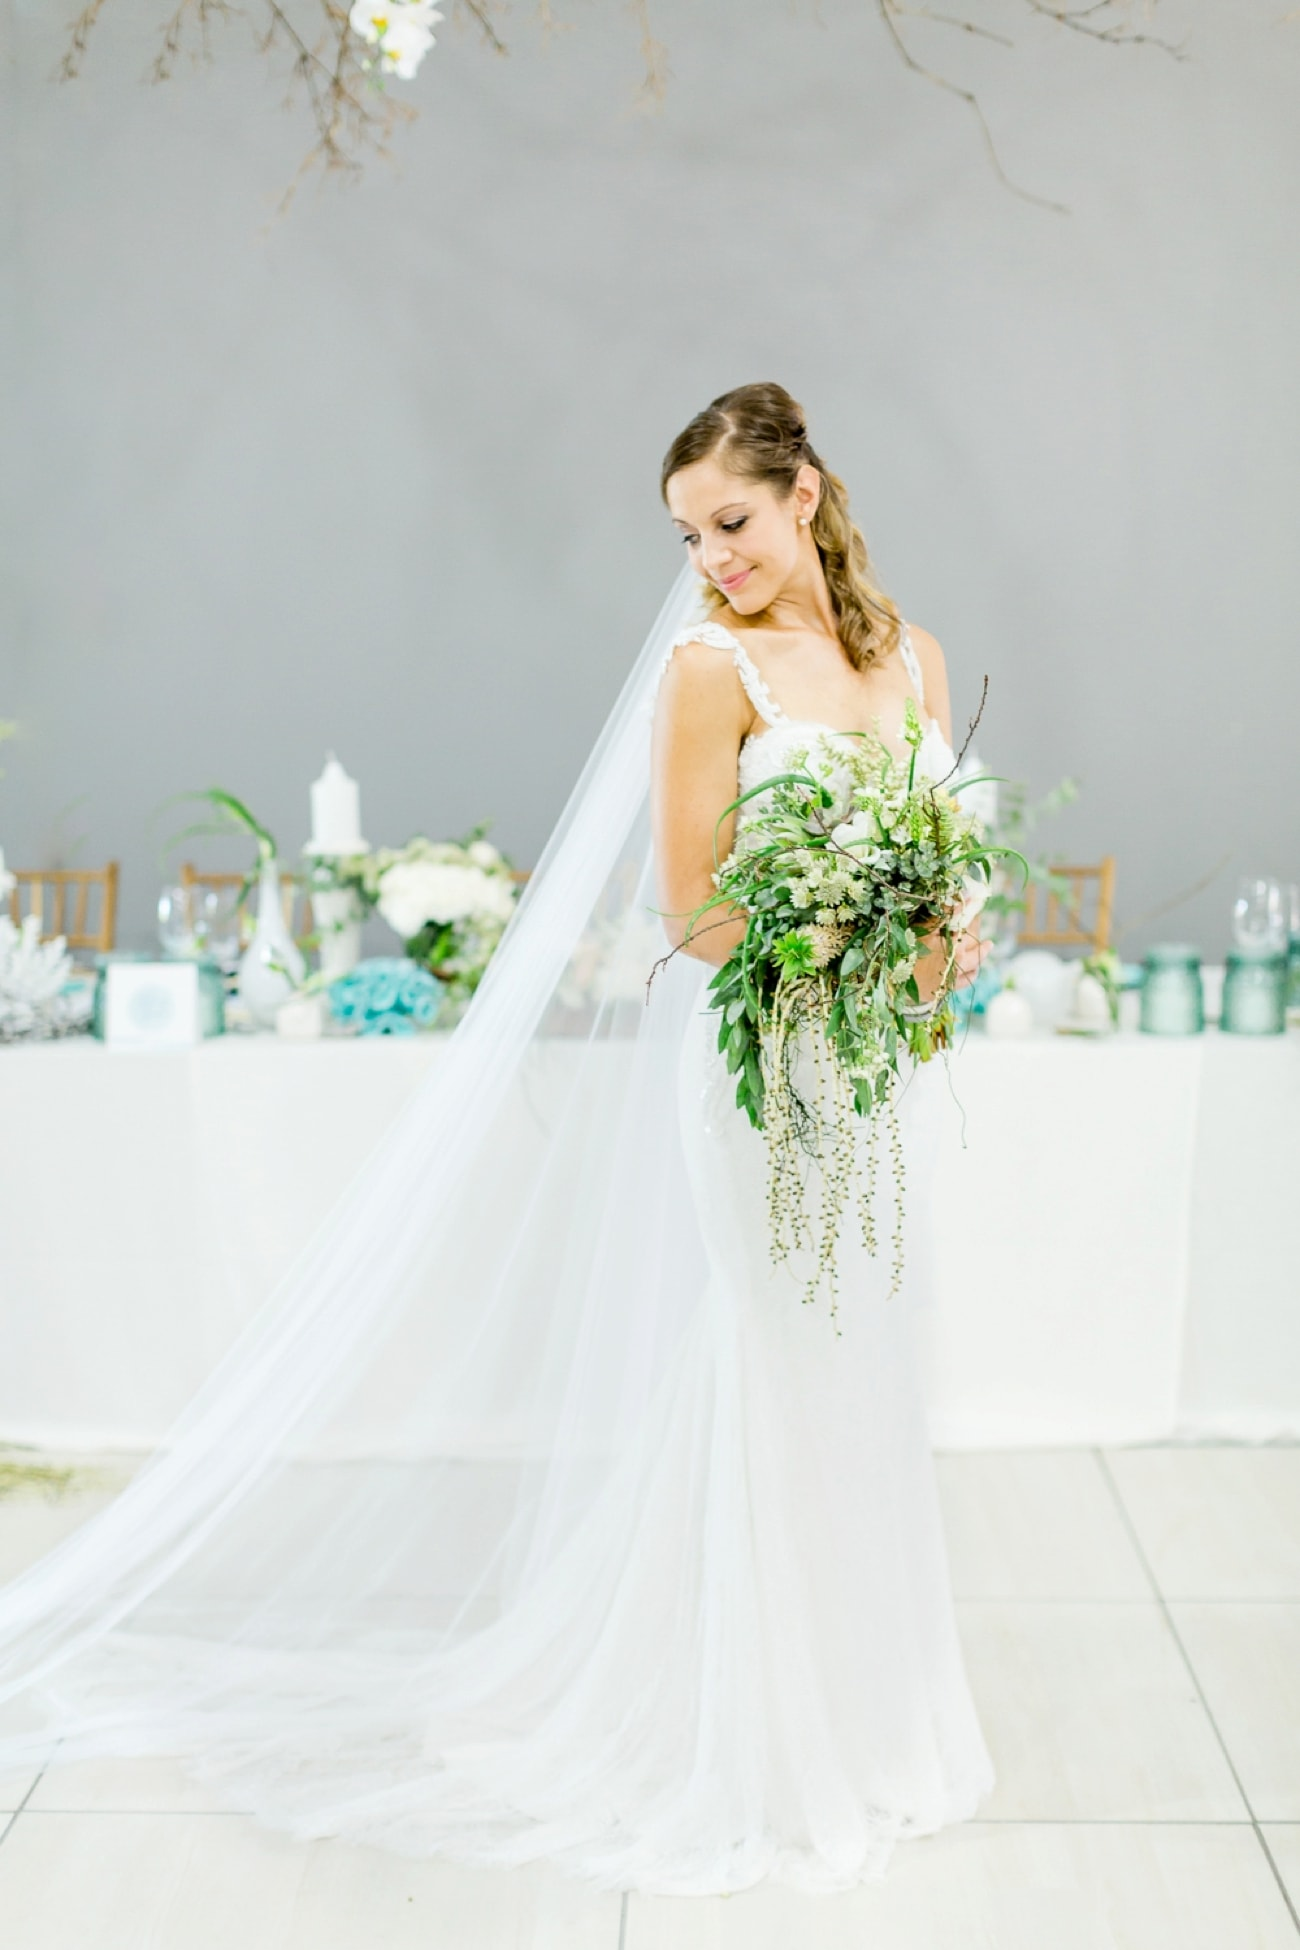 Lace Sheath Wedding Dress | Credit: Grace Studios / Absolute Perfection